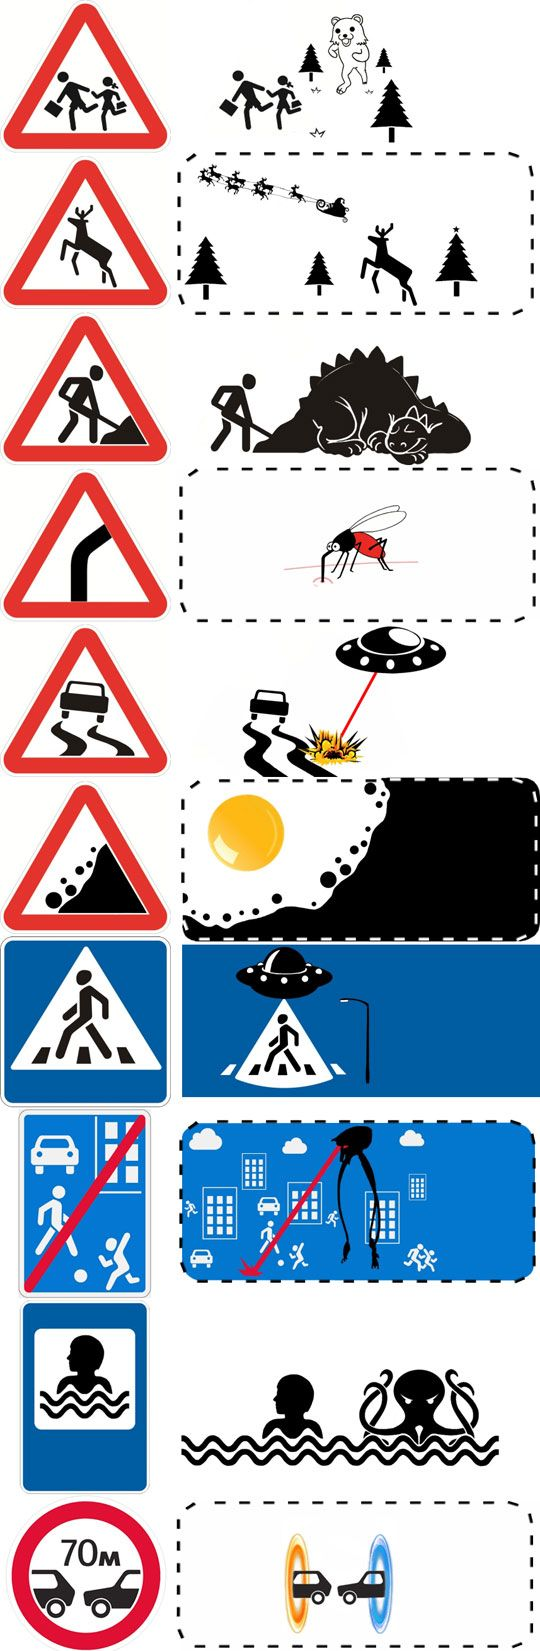 Road signs: out of frame